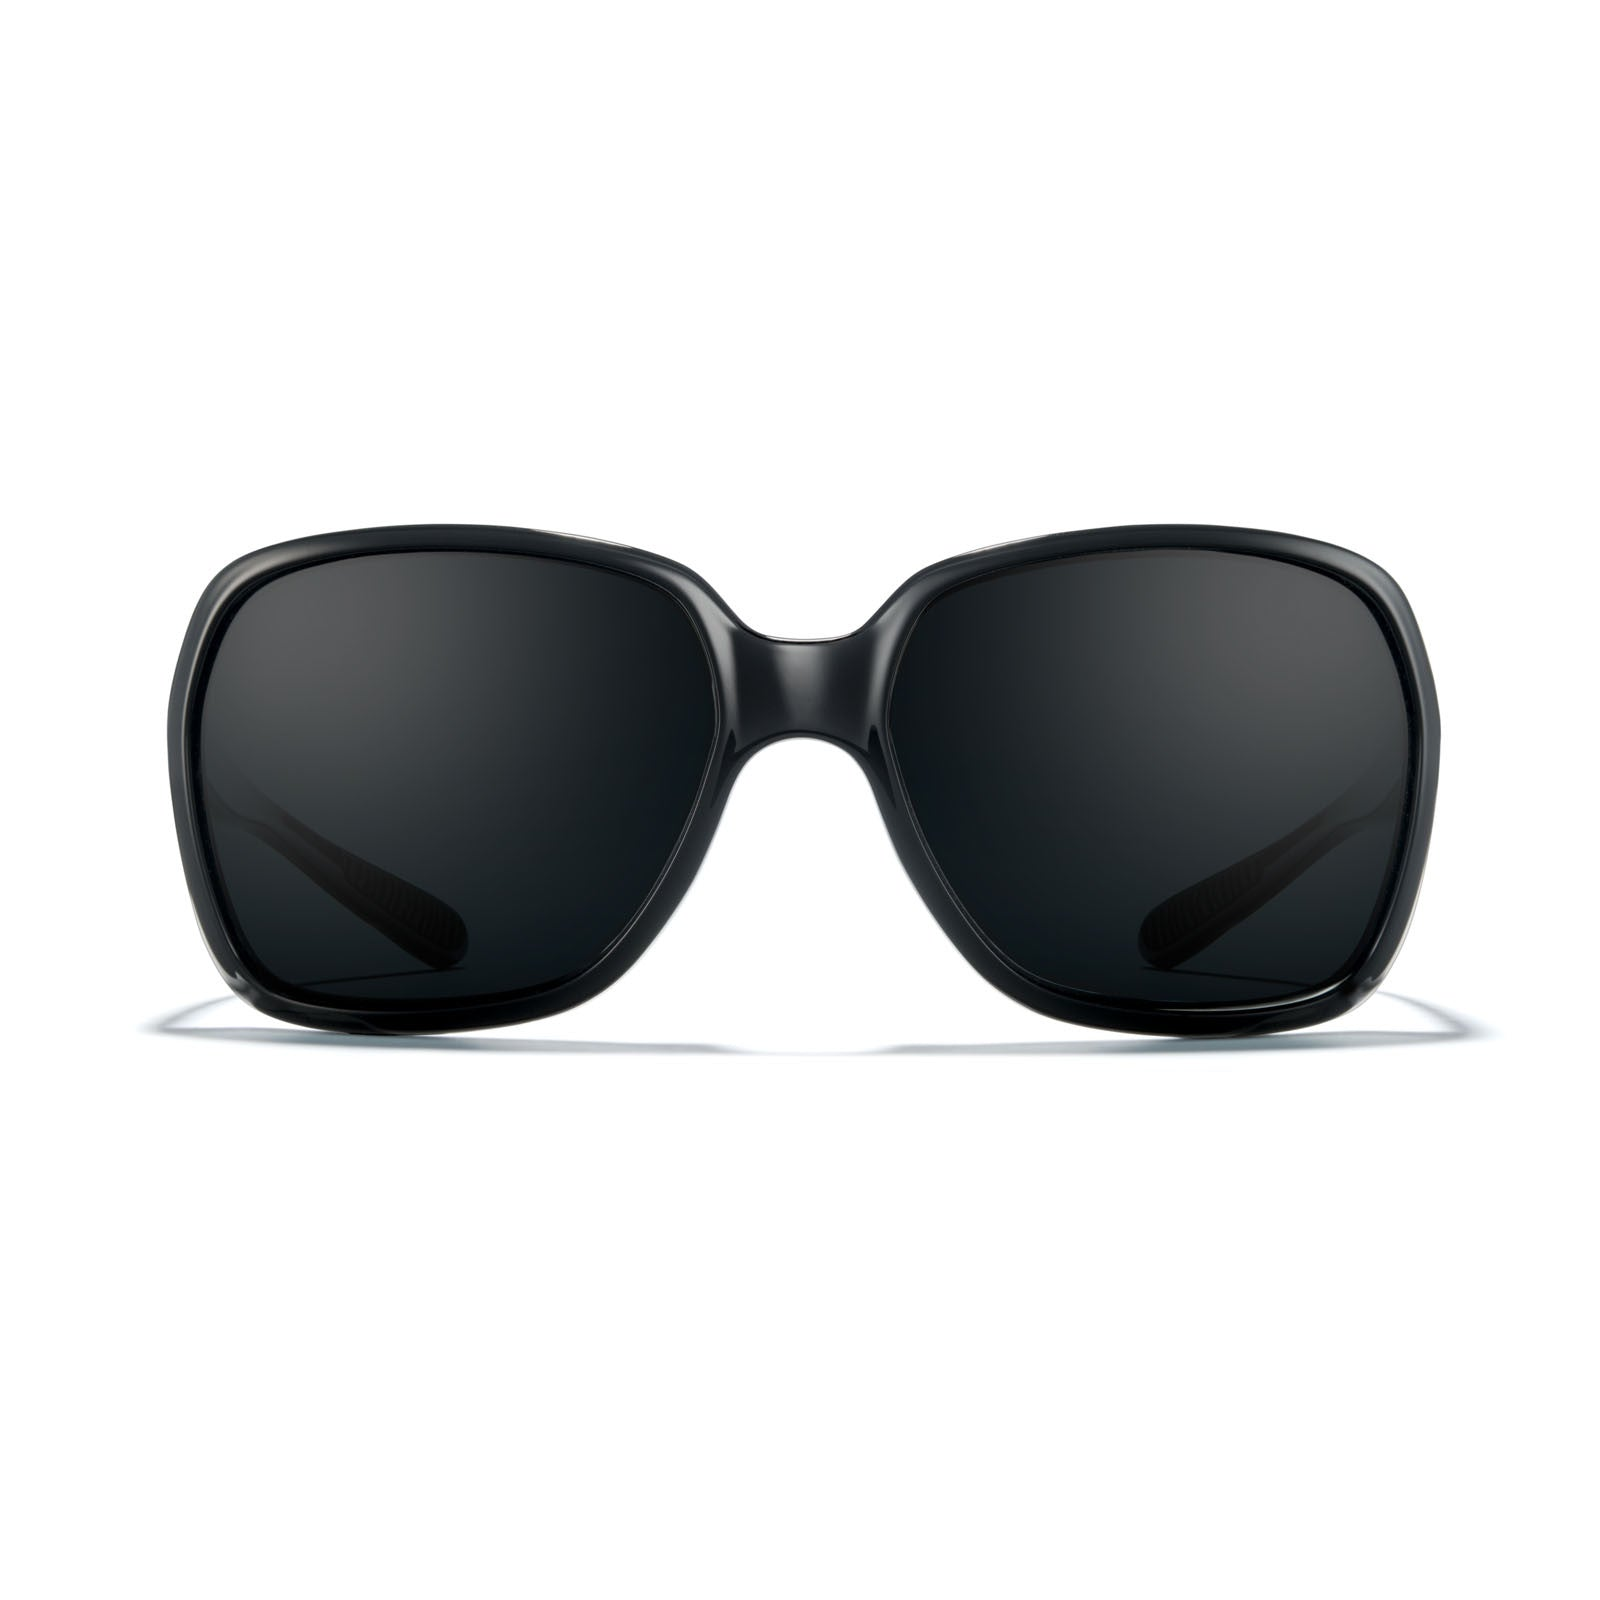 Gloss Black Frame - Super Black (Polarized) Lens